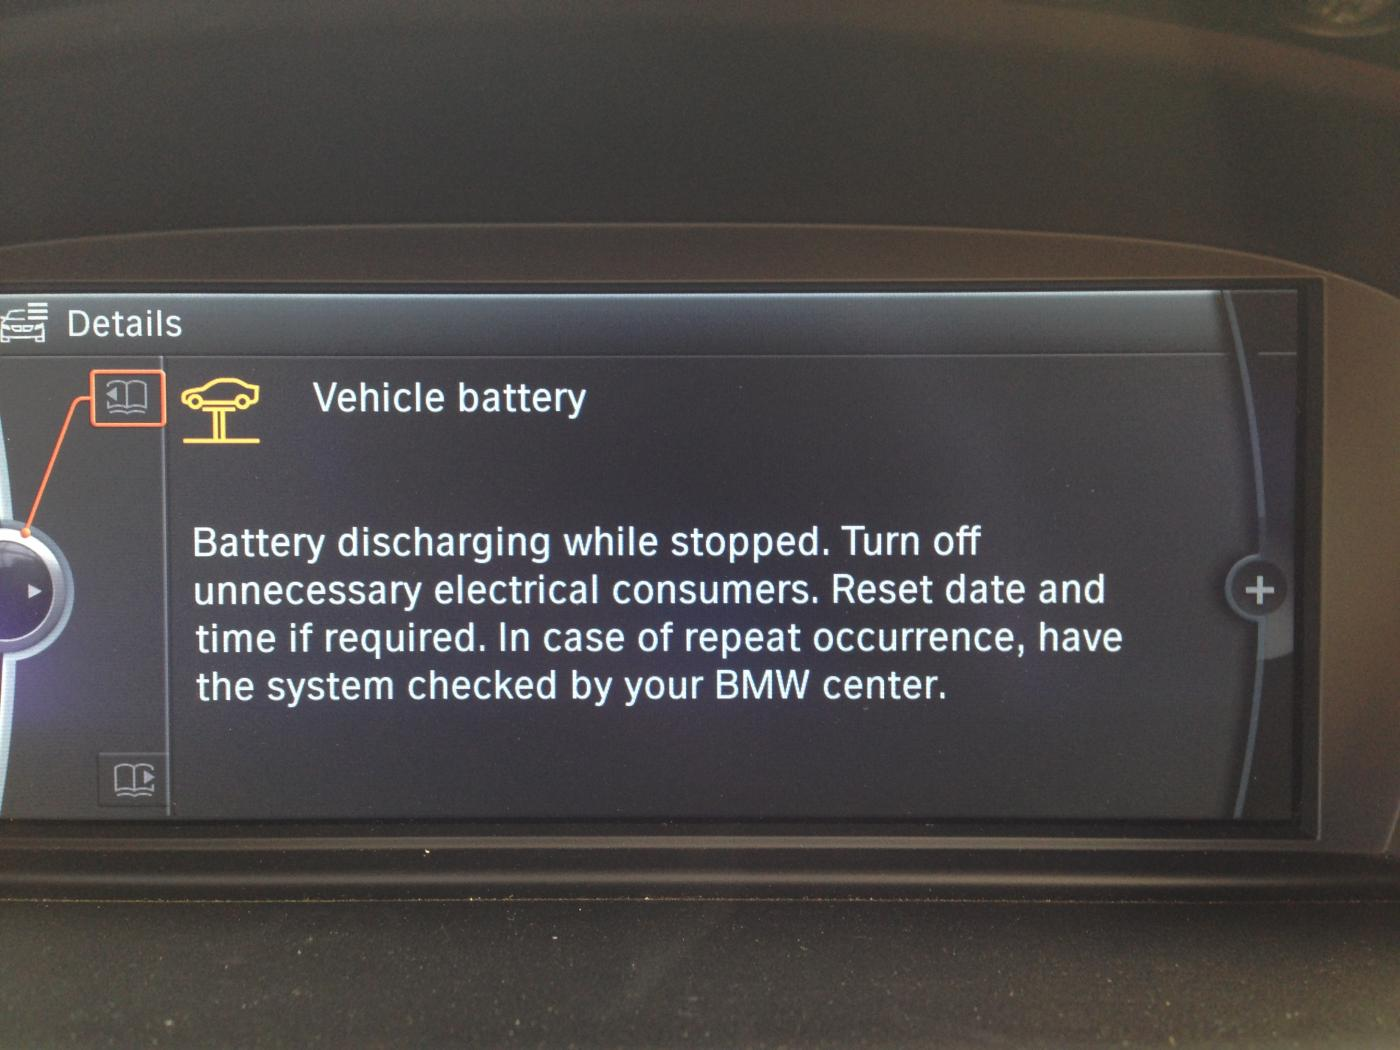 Quot Increased Battery Discharge Quot Warning After Disconnecting Battery